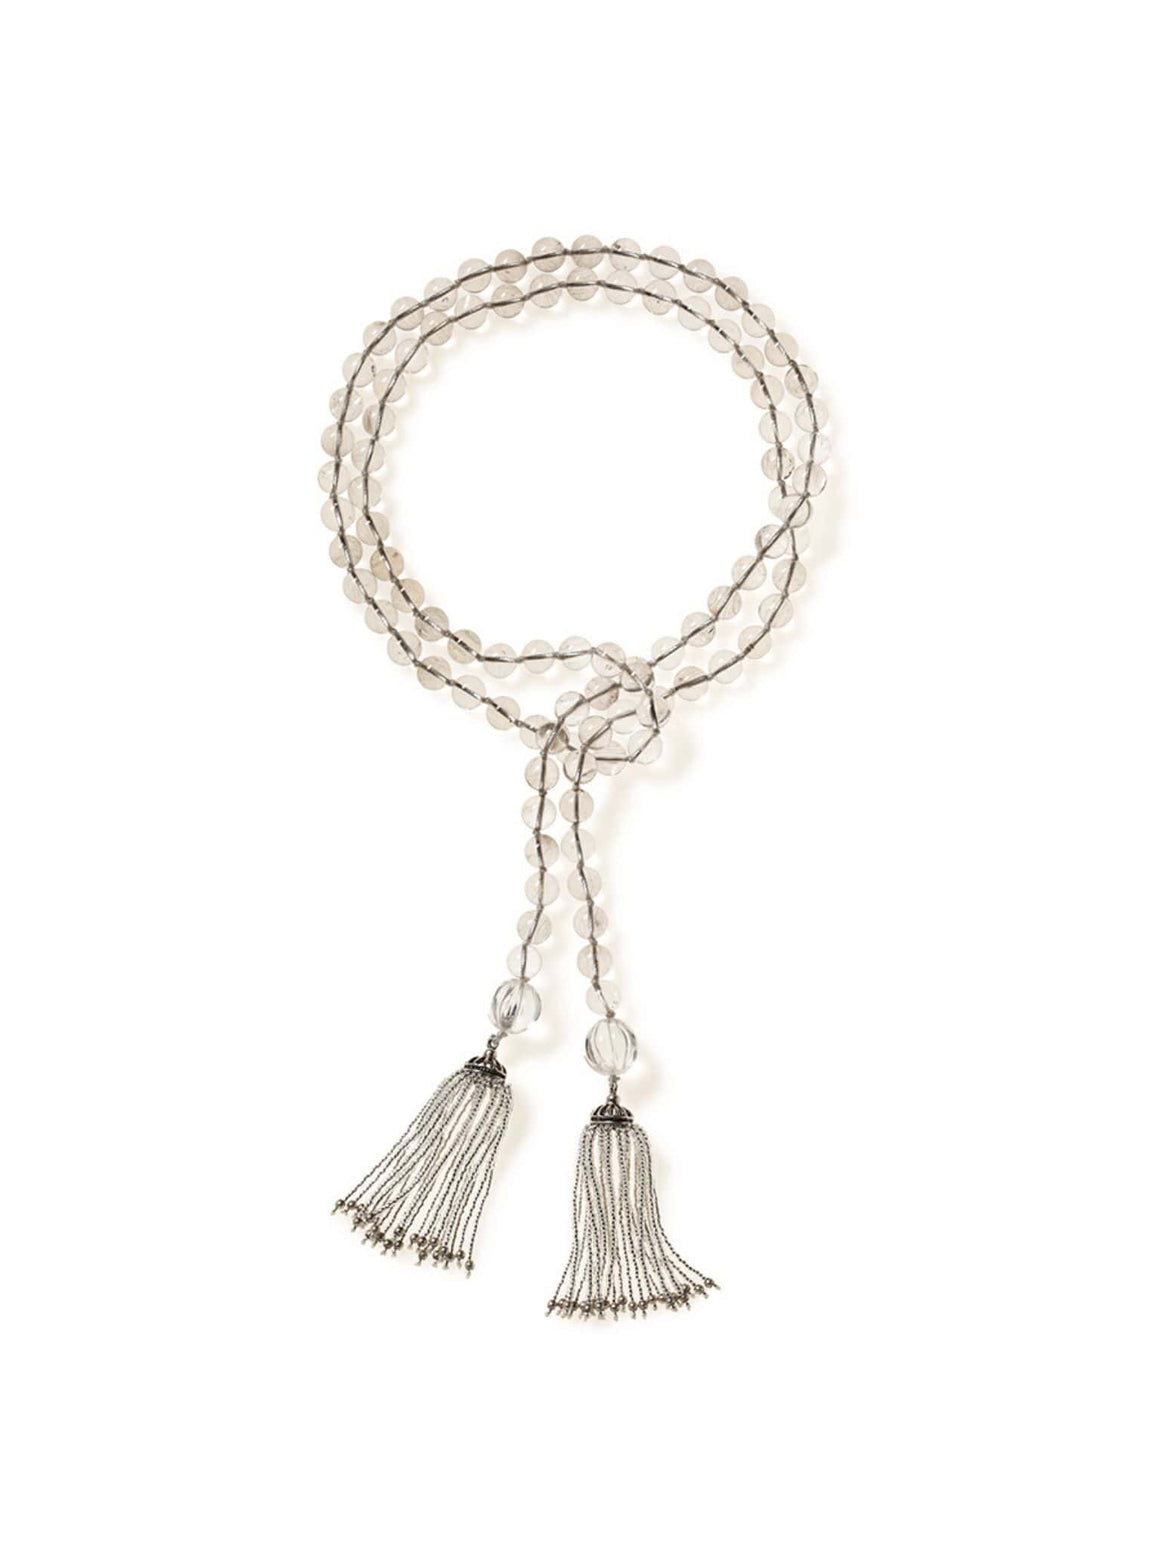 Crystal Quartz Lariat Necklace with Turkish Tassel